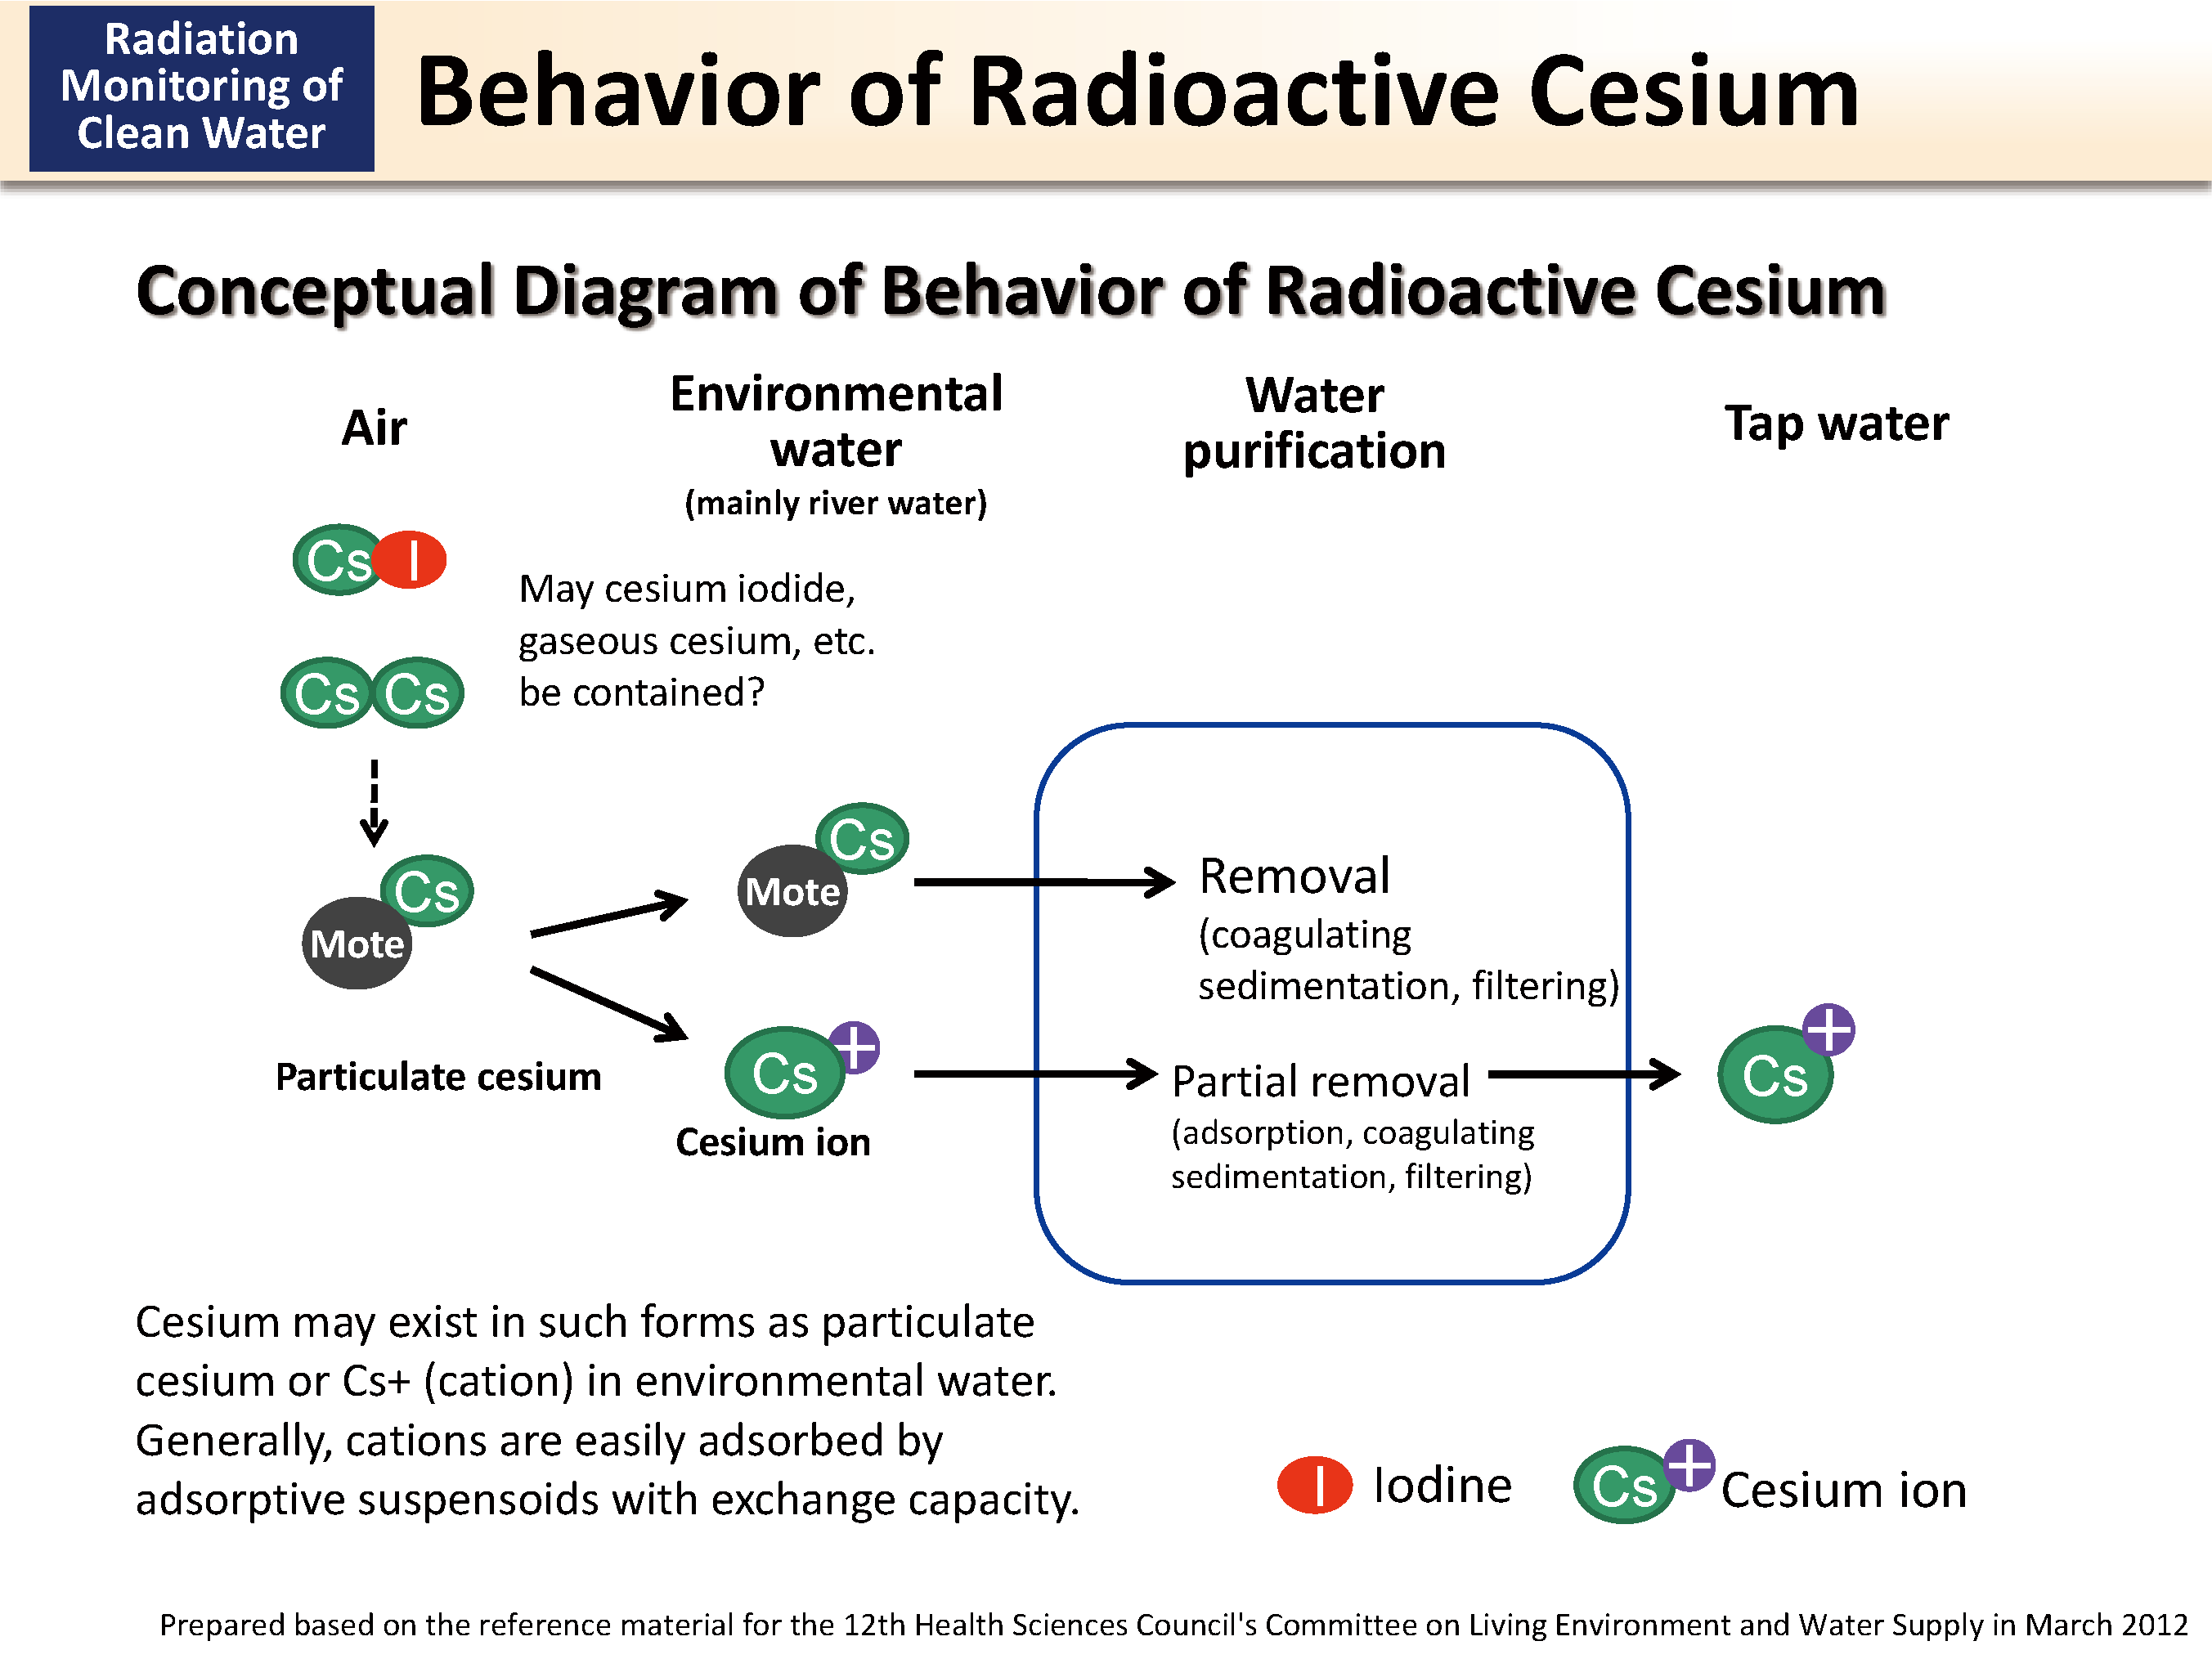 Behavior of Radioactive Cesium [MOE]